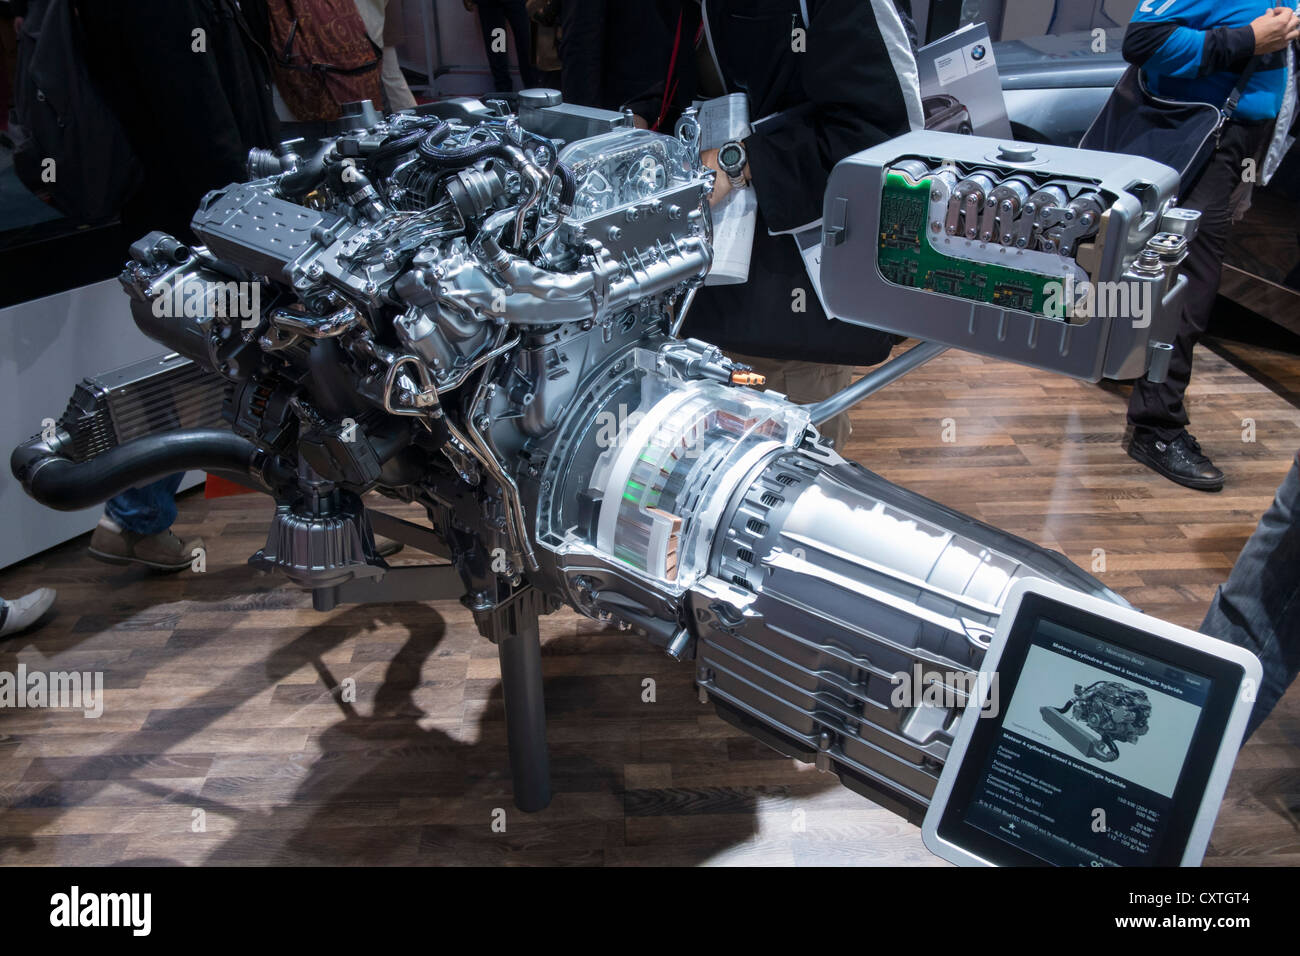 New Mercedes Benz hybrid diesel - electric engine and motor on display at Paris Motor Show 2012 - Stock Image